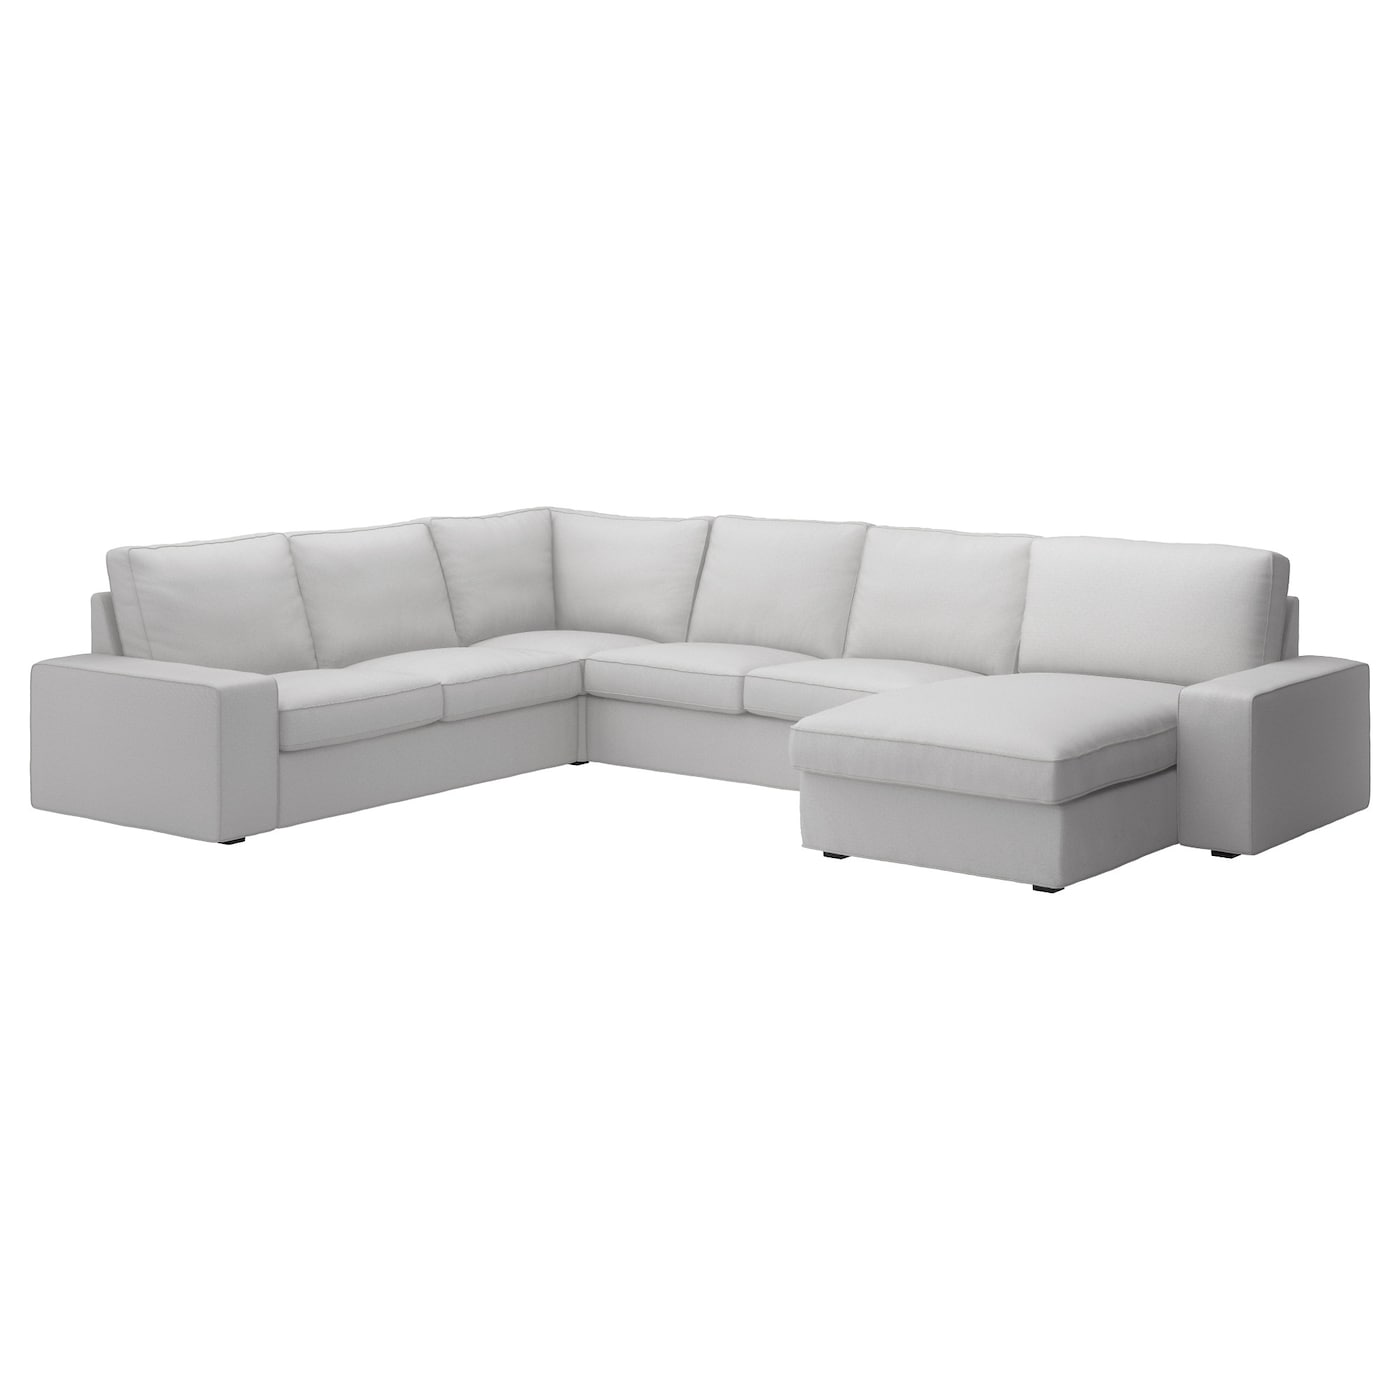 Kivik corner sofa 2 2 with chaise longue ramna light grey for Ikea sofa rosa